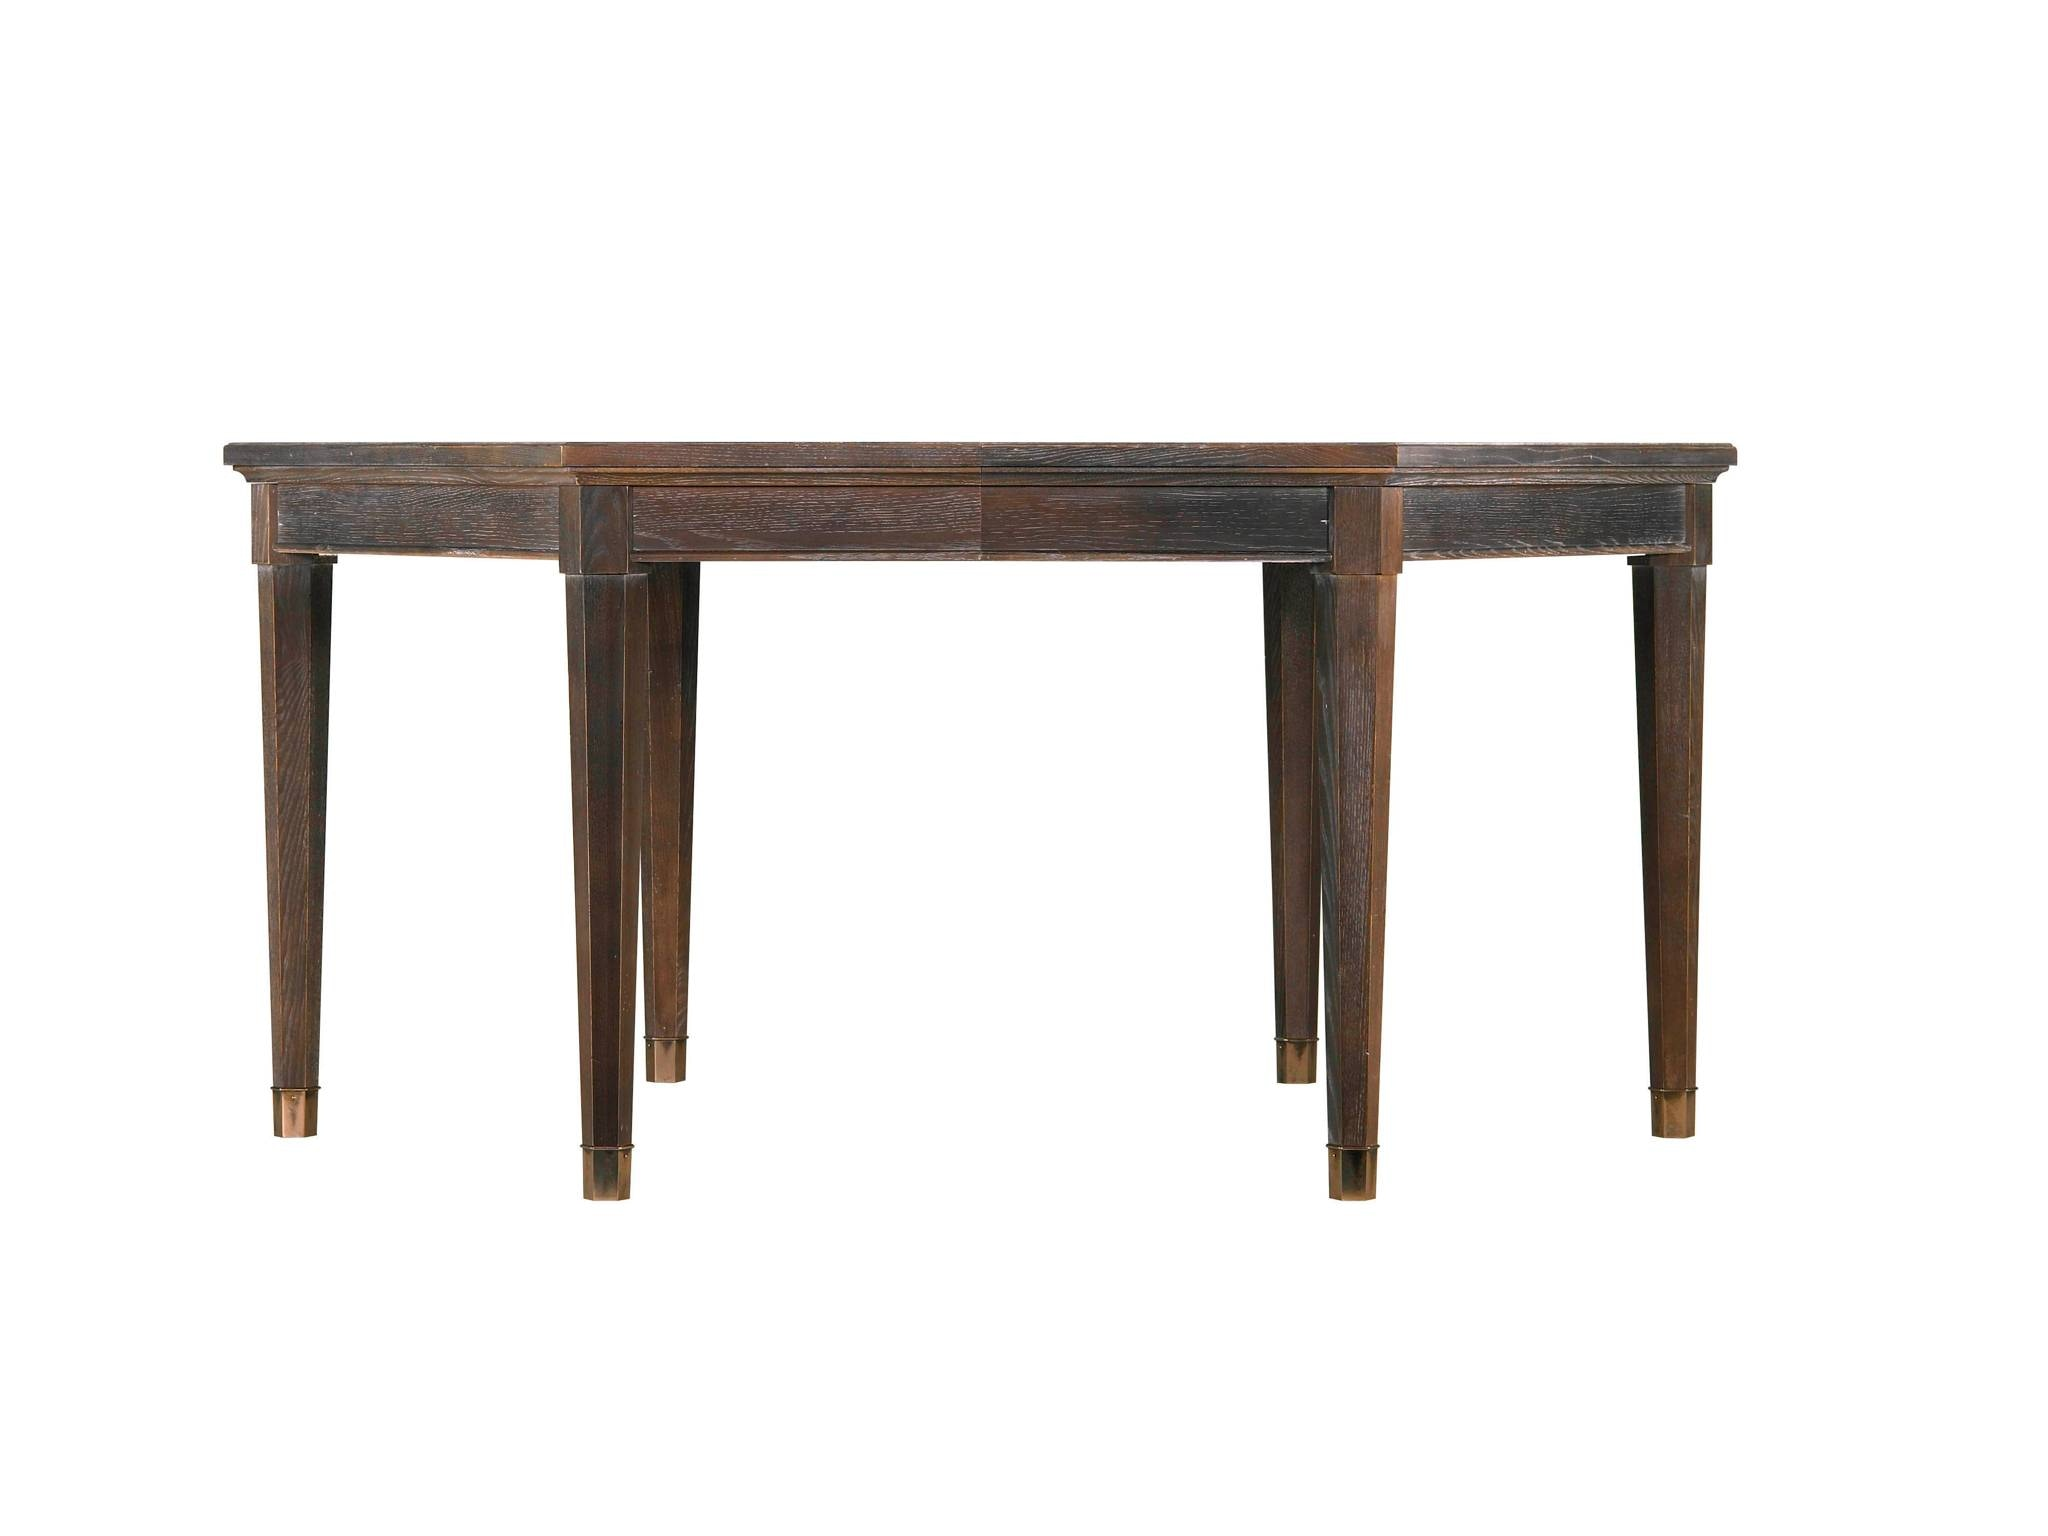 Coastal Living Soledad Promenade Leg Table 062 11 32